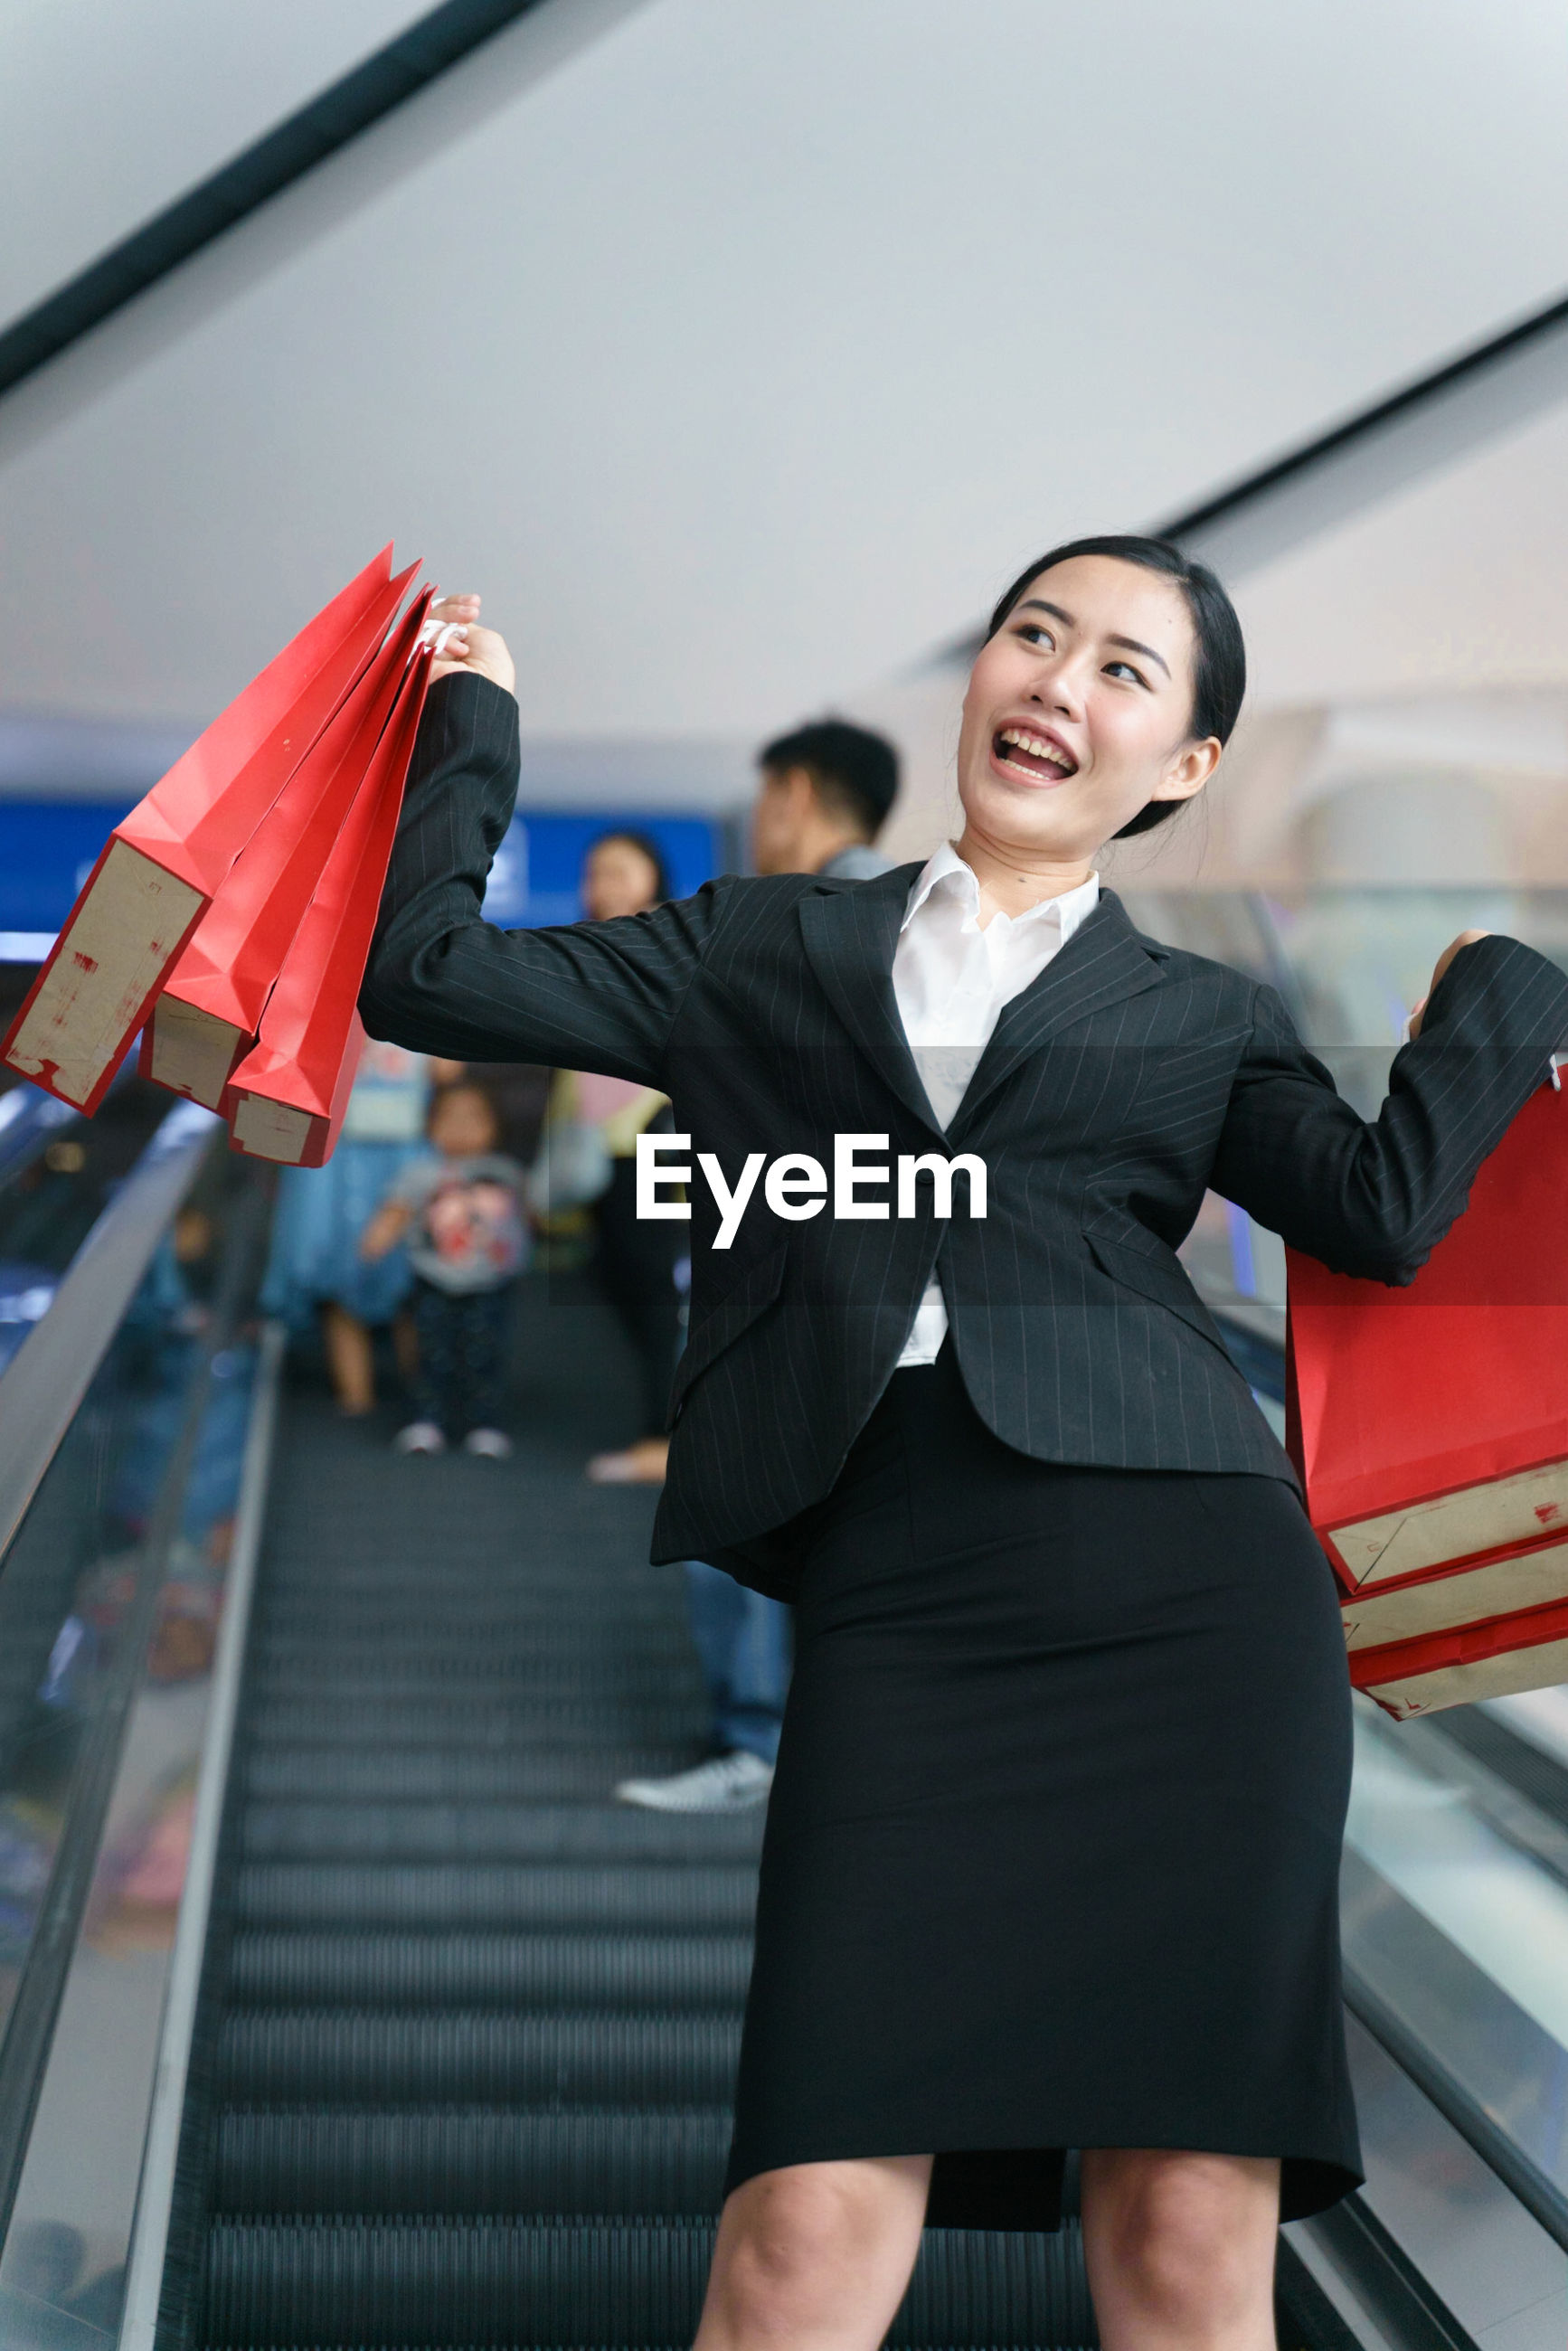 Smiling businesswoman holding shopping bags while standing on escalator at mall